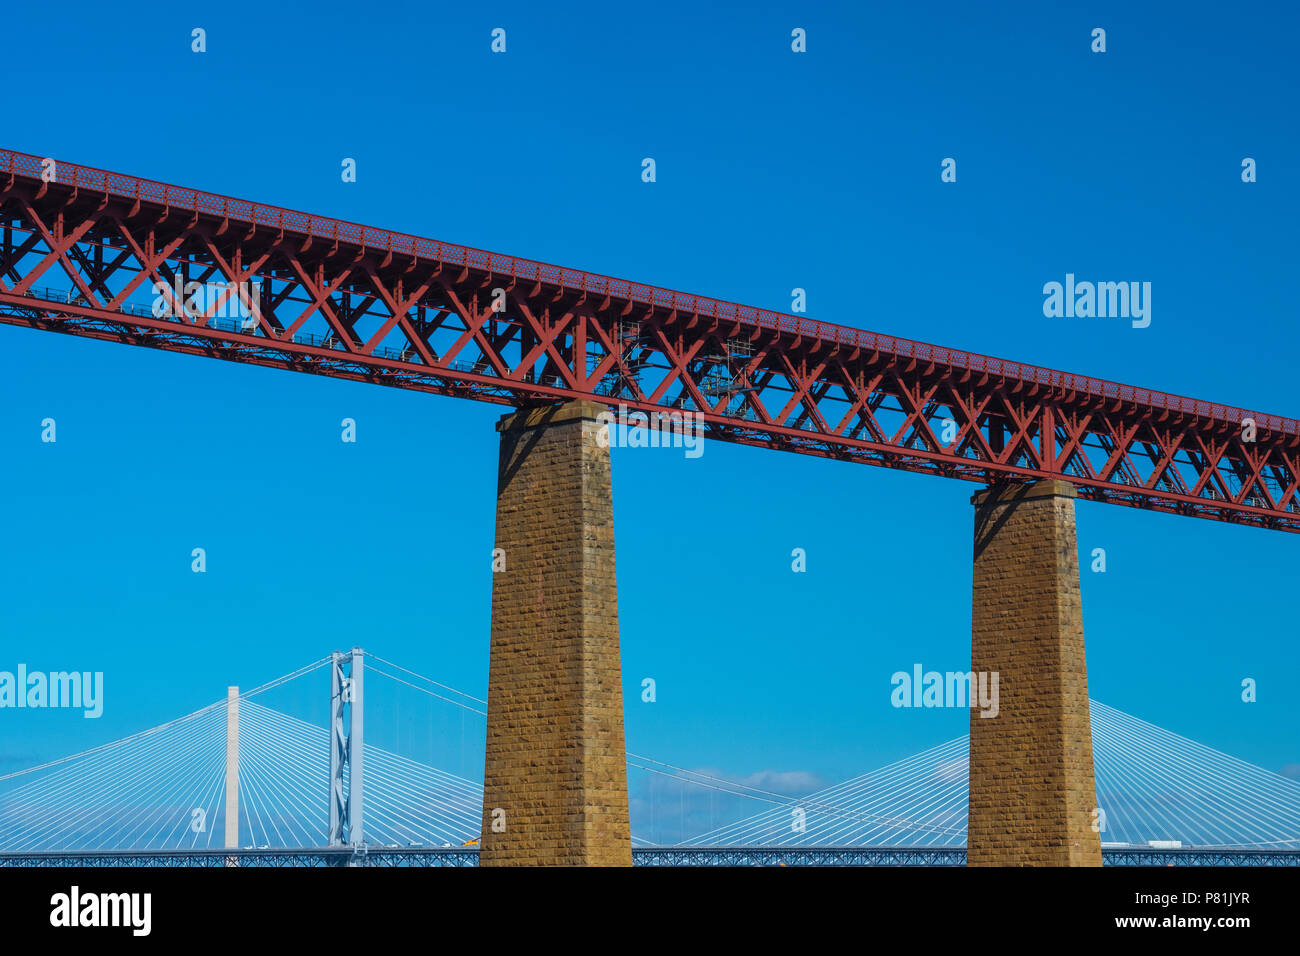 The  Forth (rail) Bridge with the Forth Road Bridge and Queensferry Crossing in the background,  summer 2018. Stock Photo